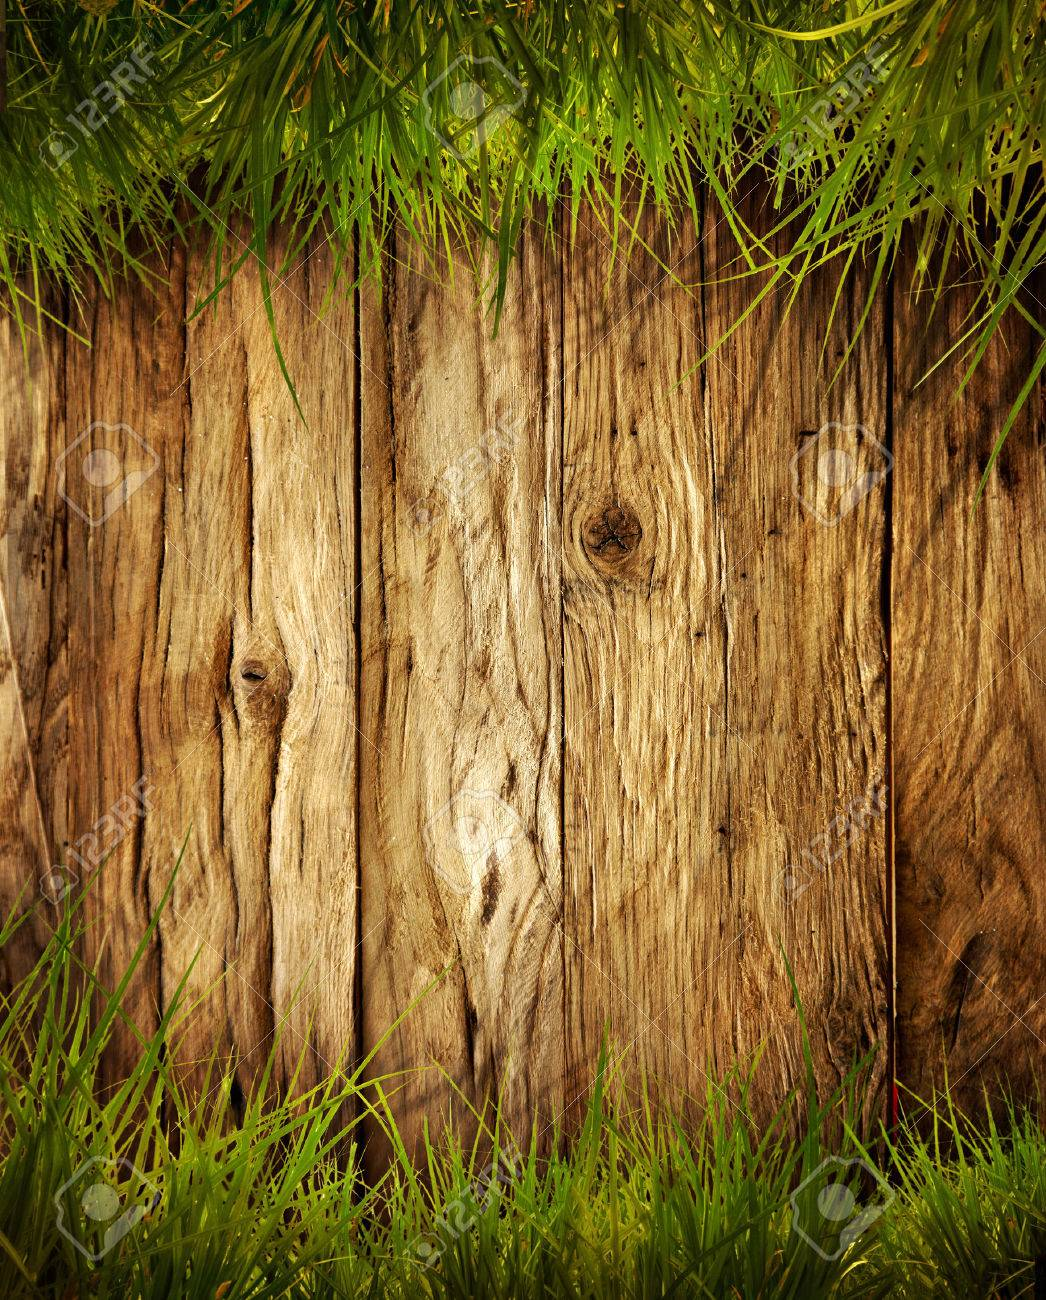 Spring grass background. Grass over wood. Nature background with grass and wood - 42140248